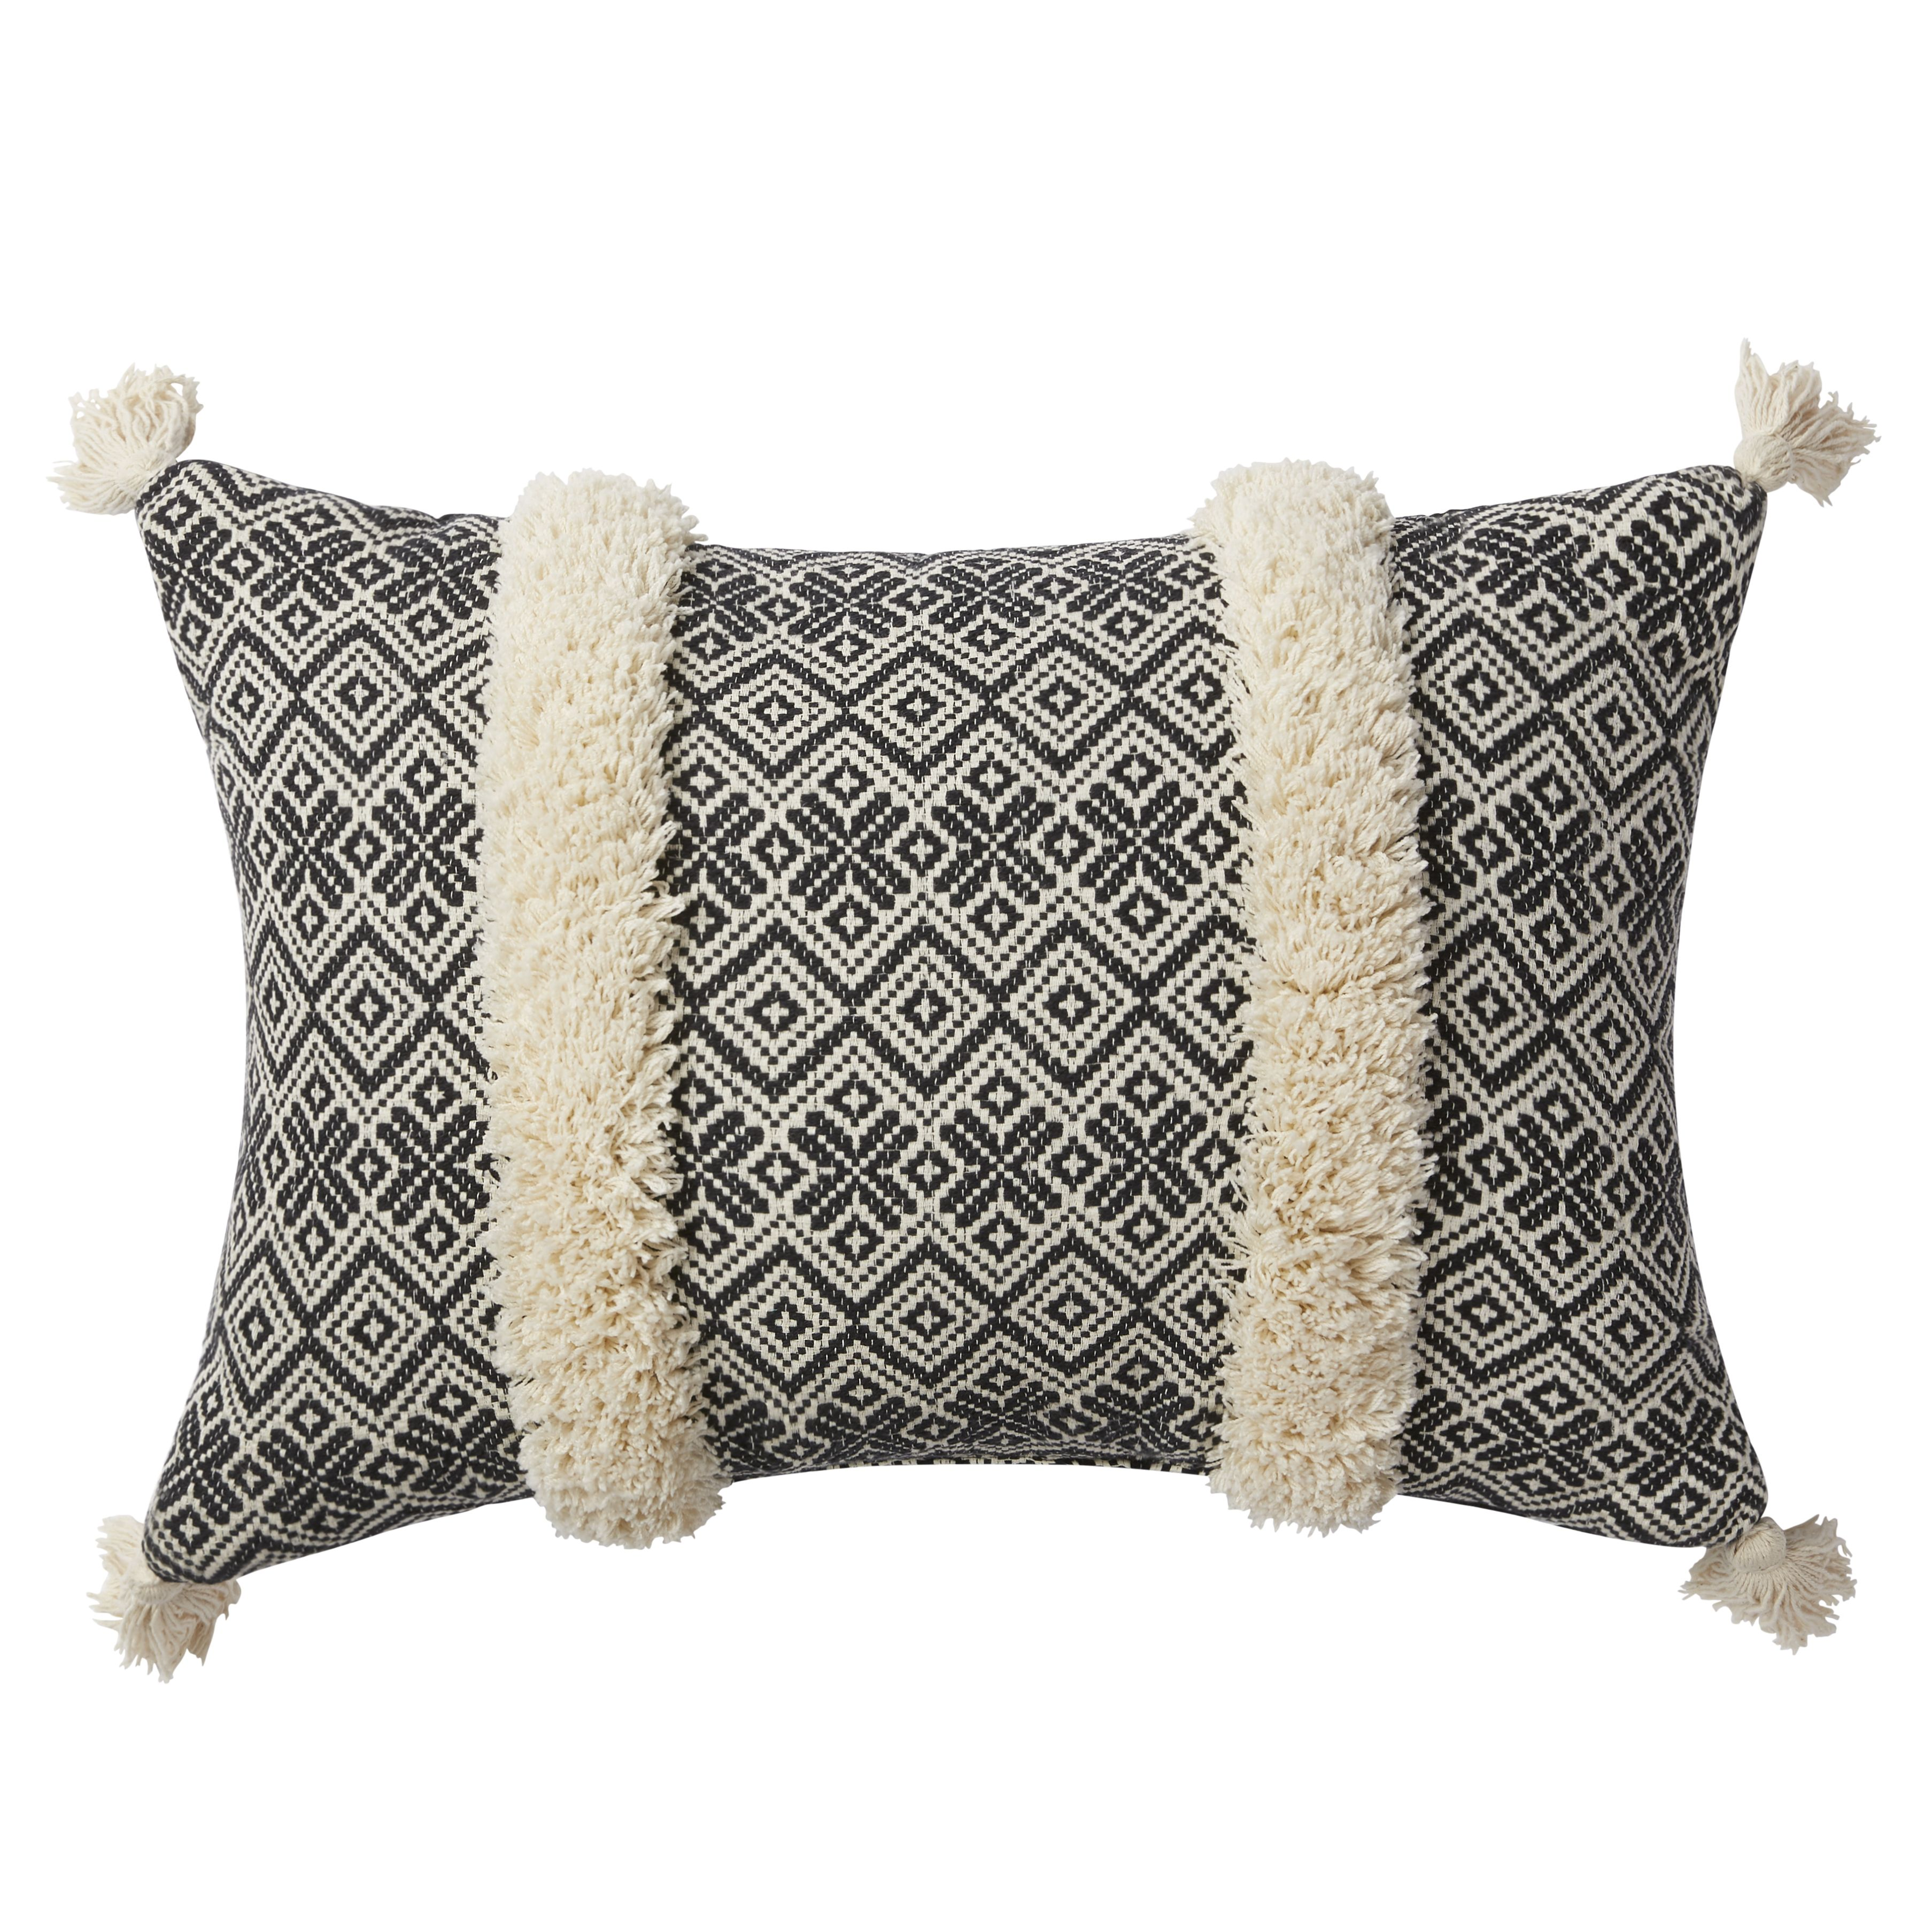 Better Homes And Gardens Handcrafted Jacquard Tufted Decorative Pillow Walmart Com Handcraft Decorative Pillows Pillows